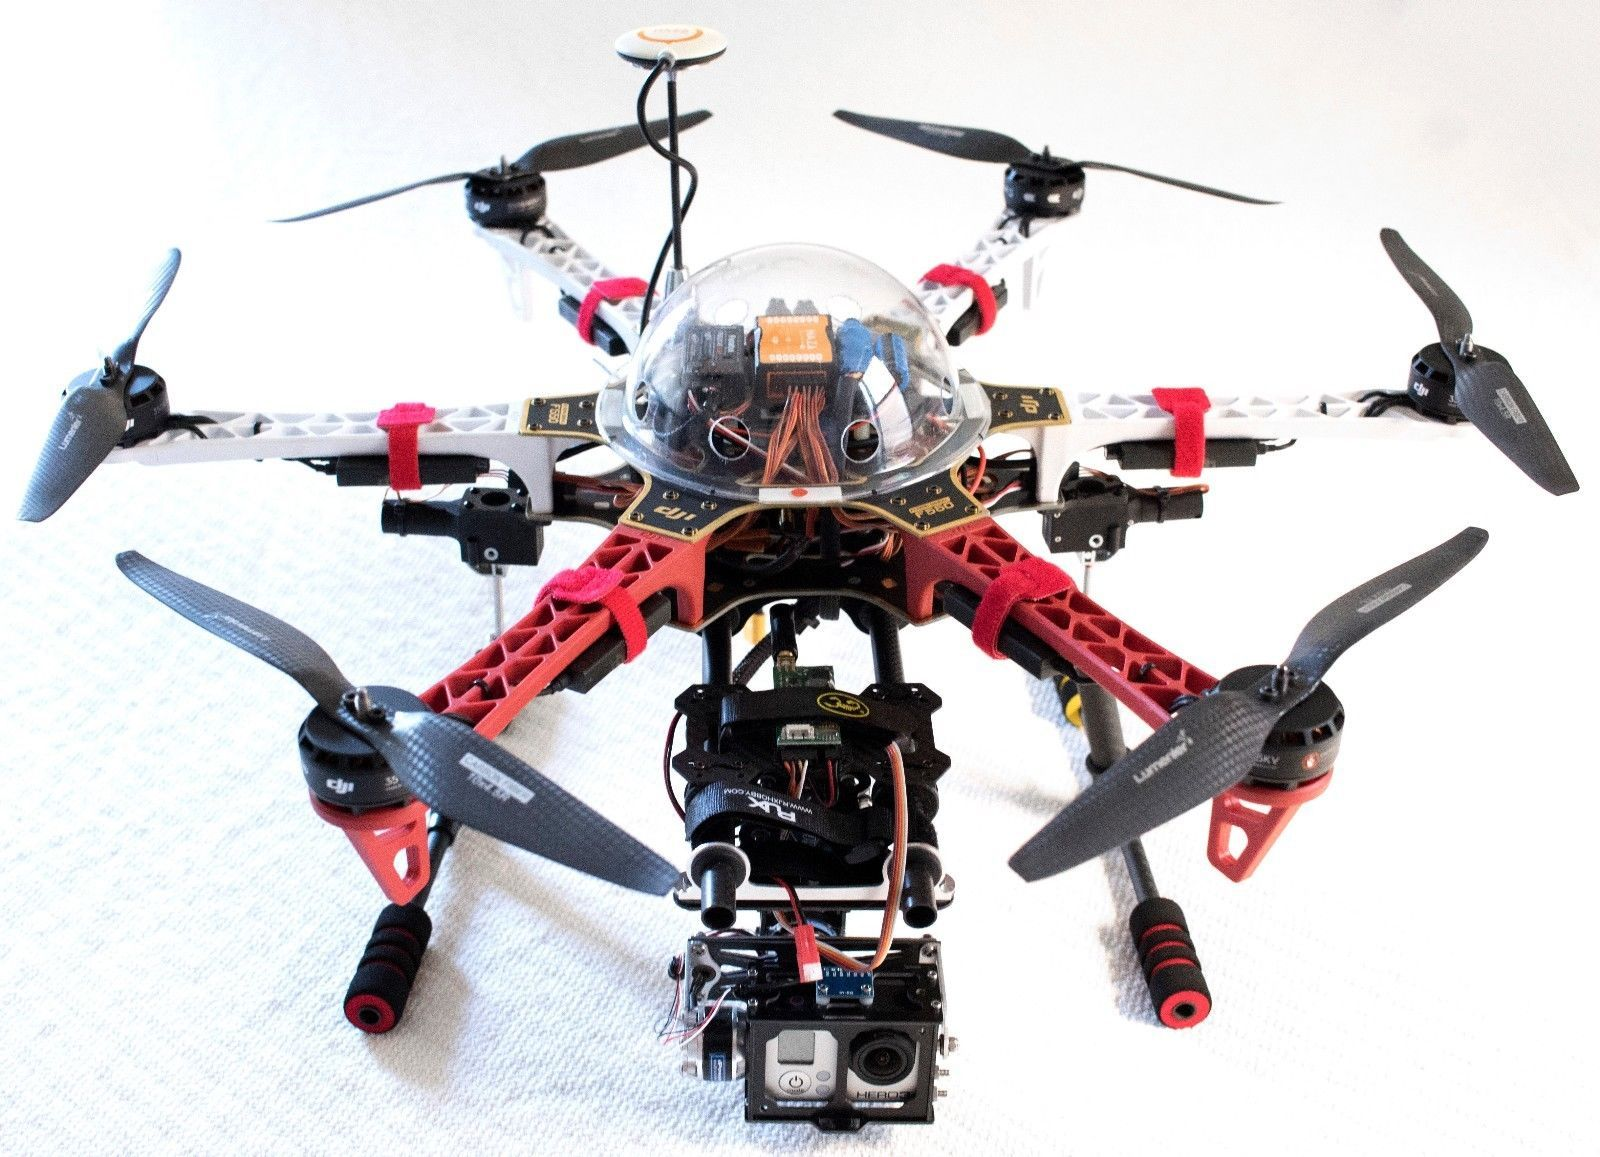 Custom DJI f550 Hex. DJI Motors. Carbon Props. NAZA-M V2. Gimbal. Case  Extras | Aerospace, Aerospace engineering, Engineering